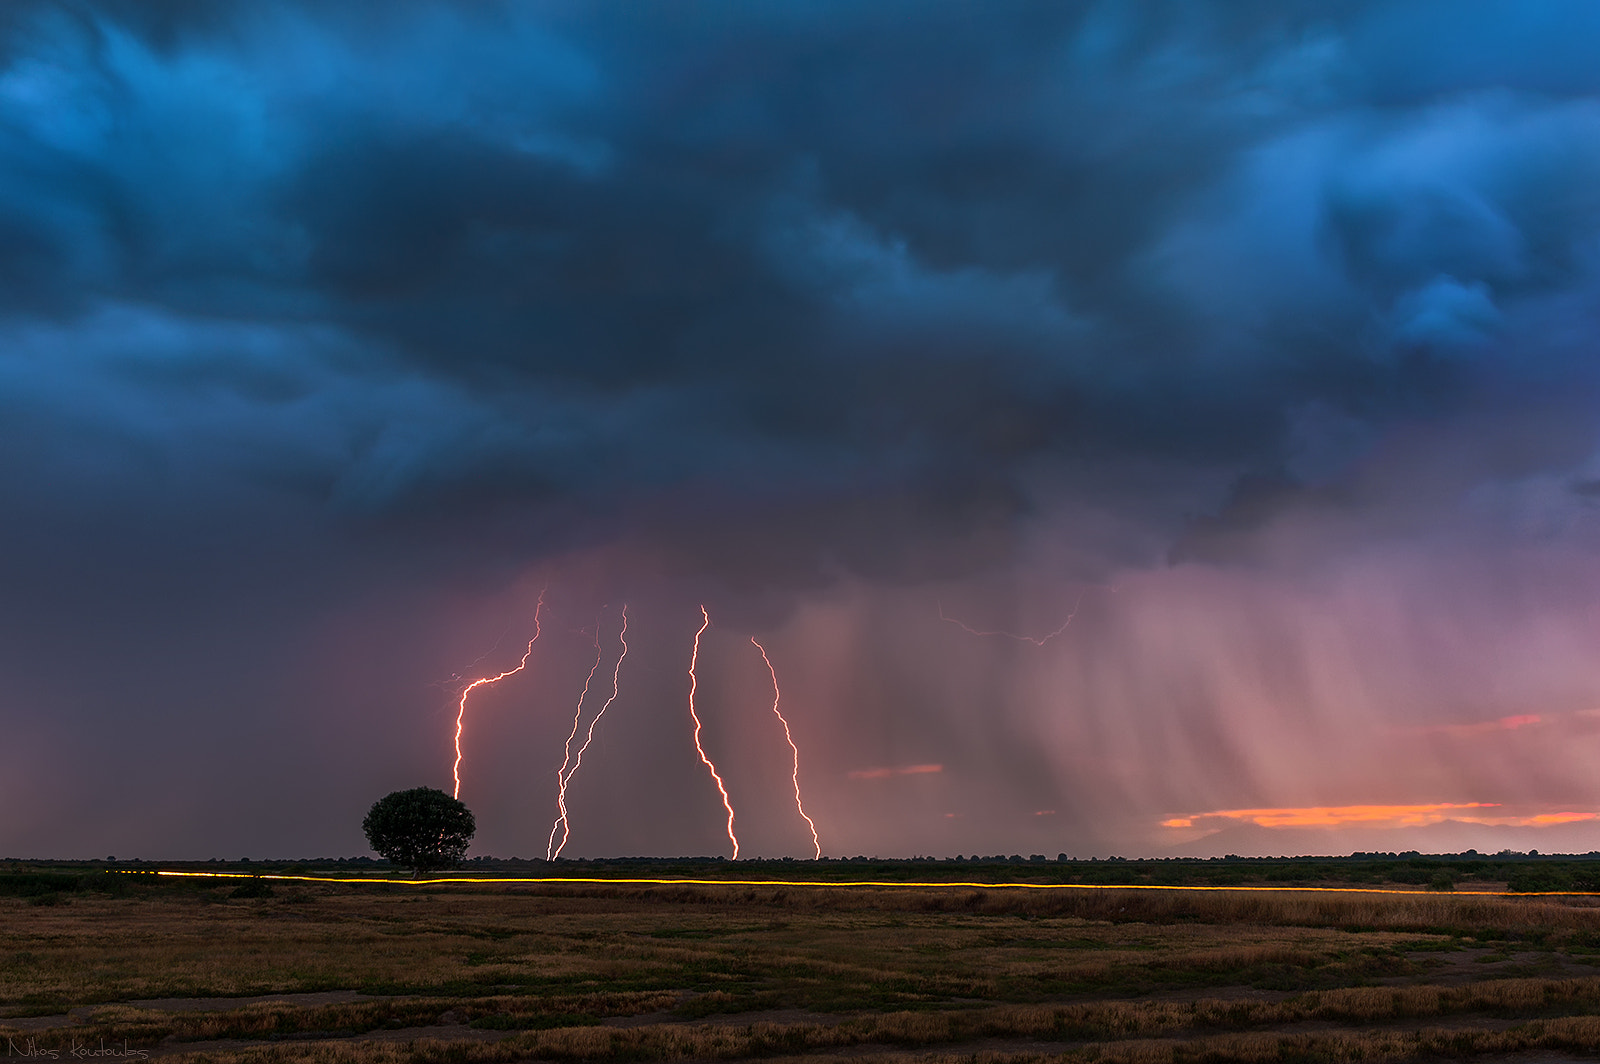 Photograph Lightning storm over the tree by Nikos Koutoulas on 500px